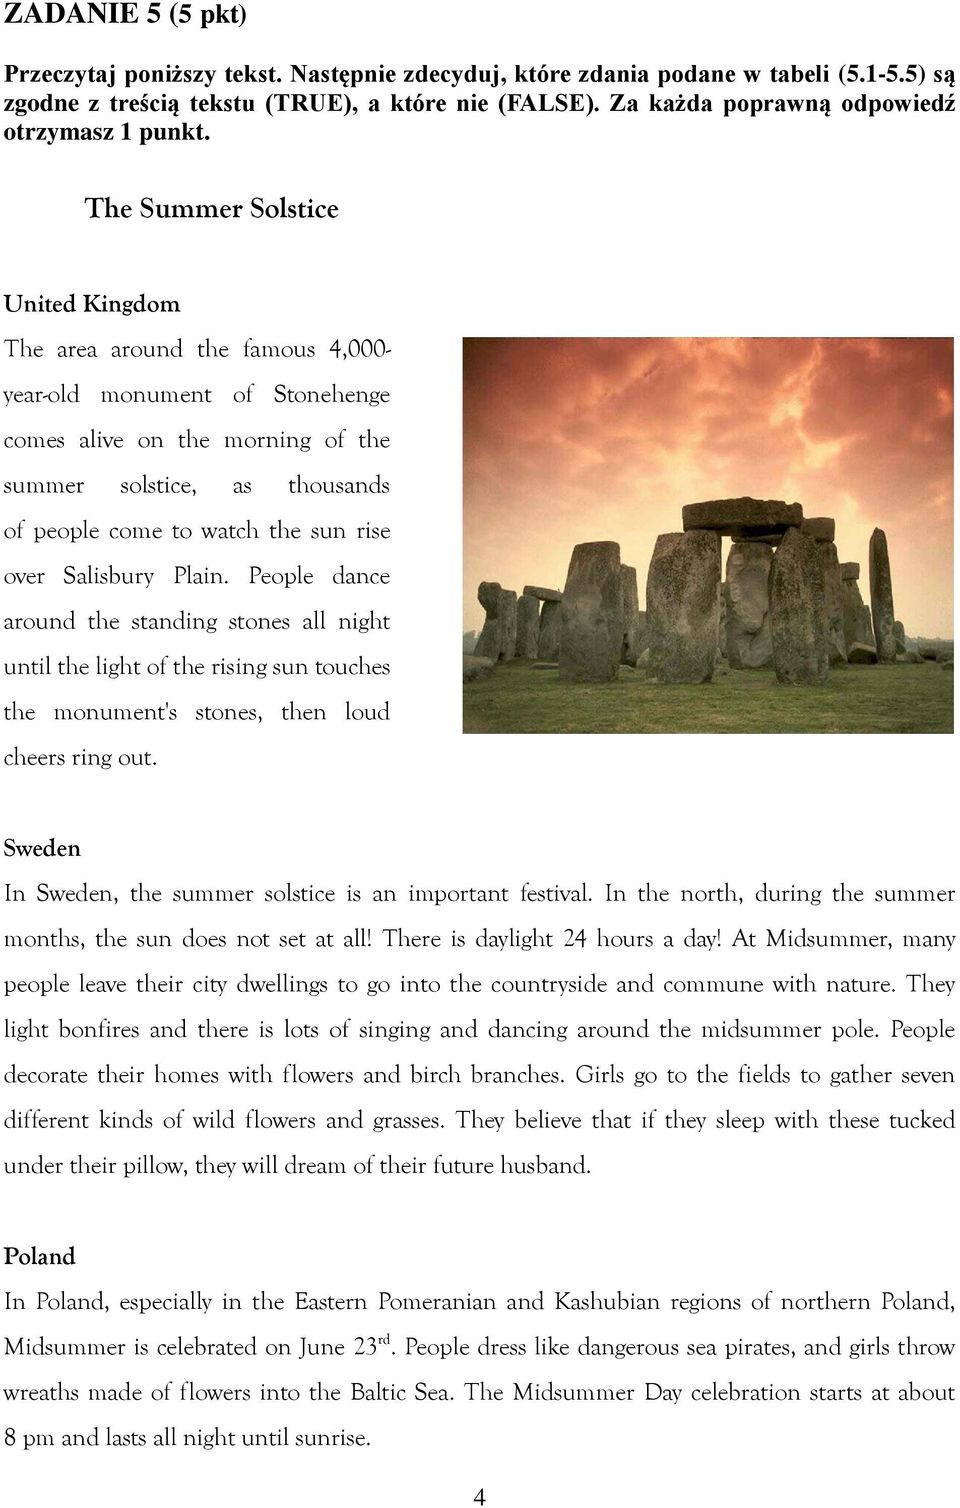 The Summer Solstice United Kingdom The area around the famous 4,000 yearold monument of Stonehenge comes alive on the morning of the summer solstice, as thousands of people come to watch the sun rise